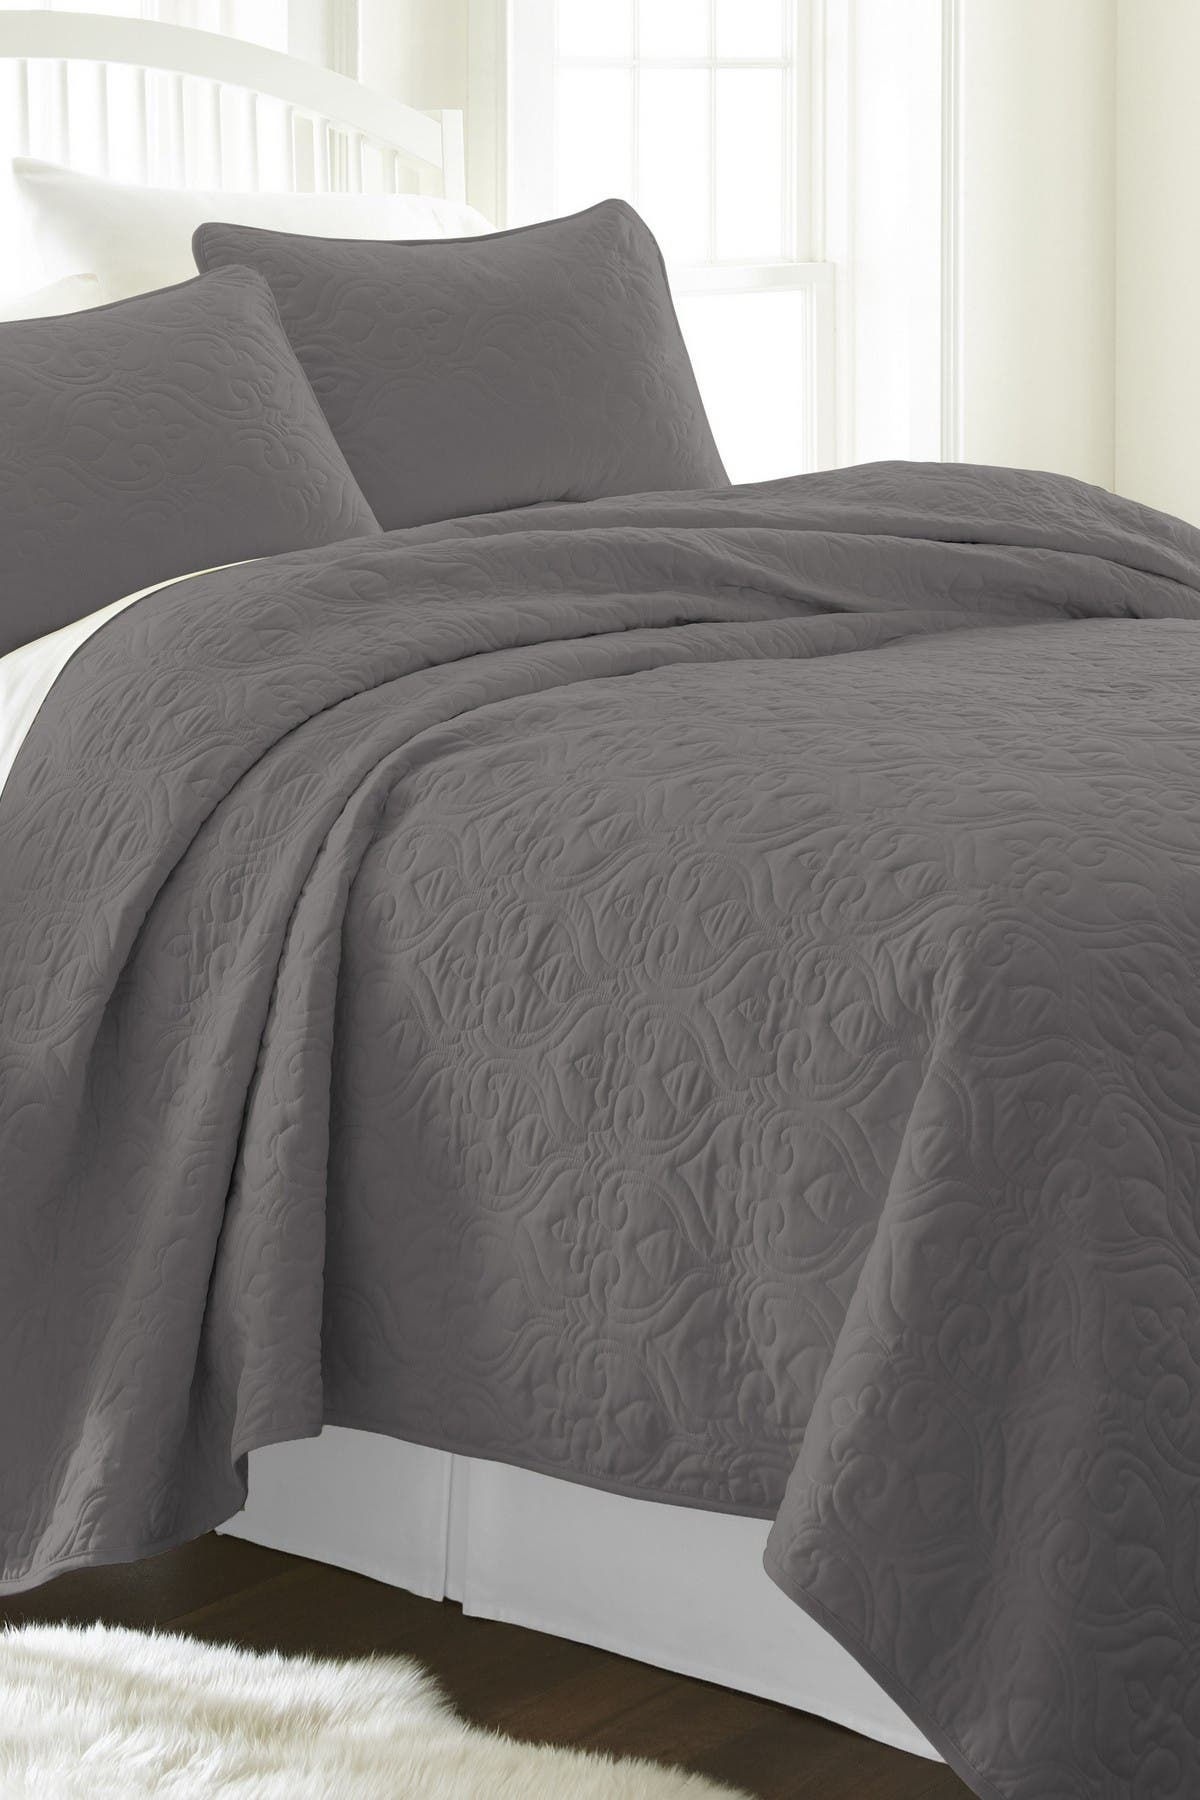 Image of IENJOY HOME Home Spun Premium Ultra Soft Damask Pattern Quilted Full/Queen Coverlet Set - Gray